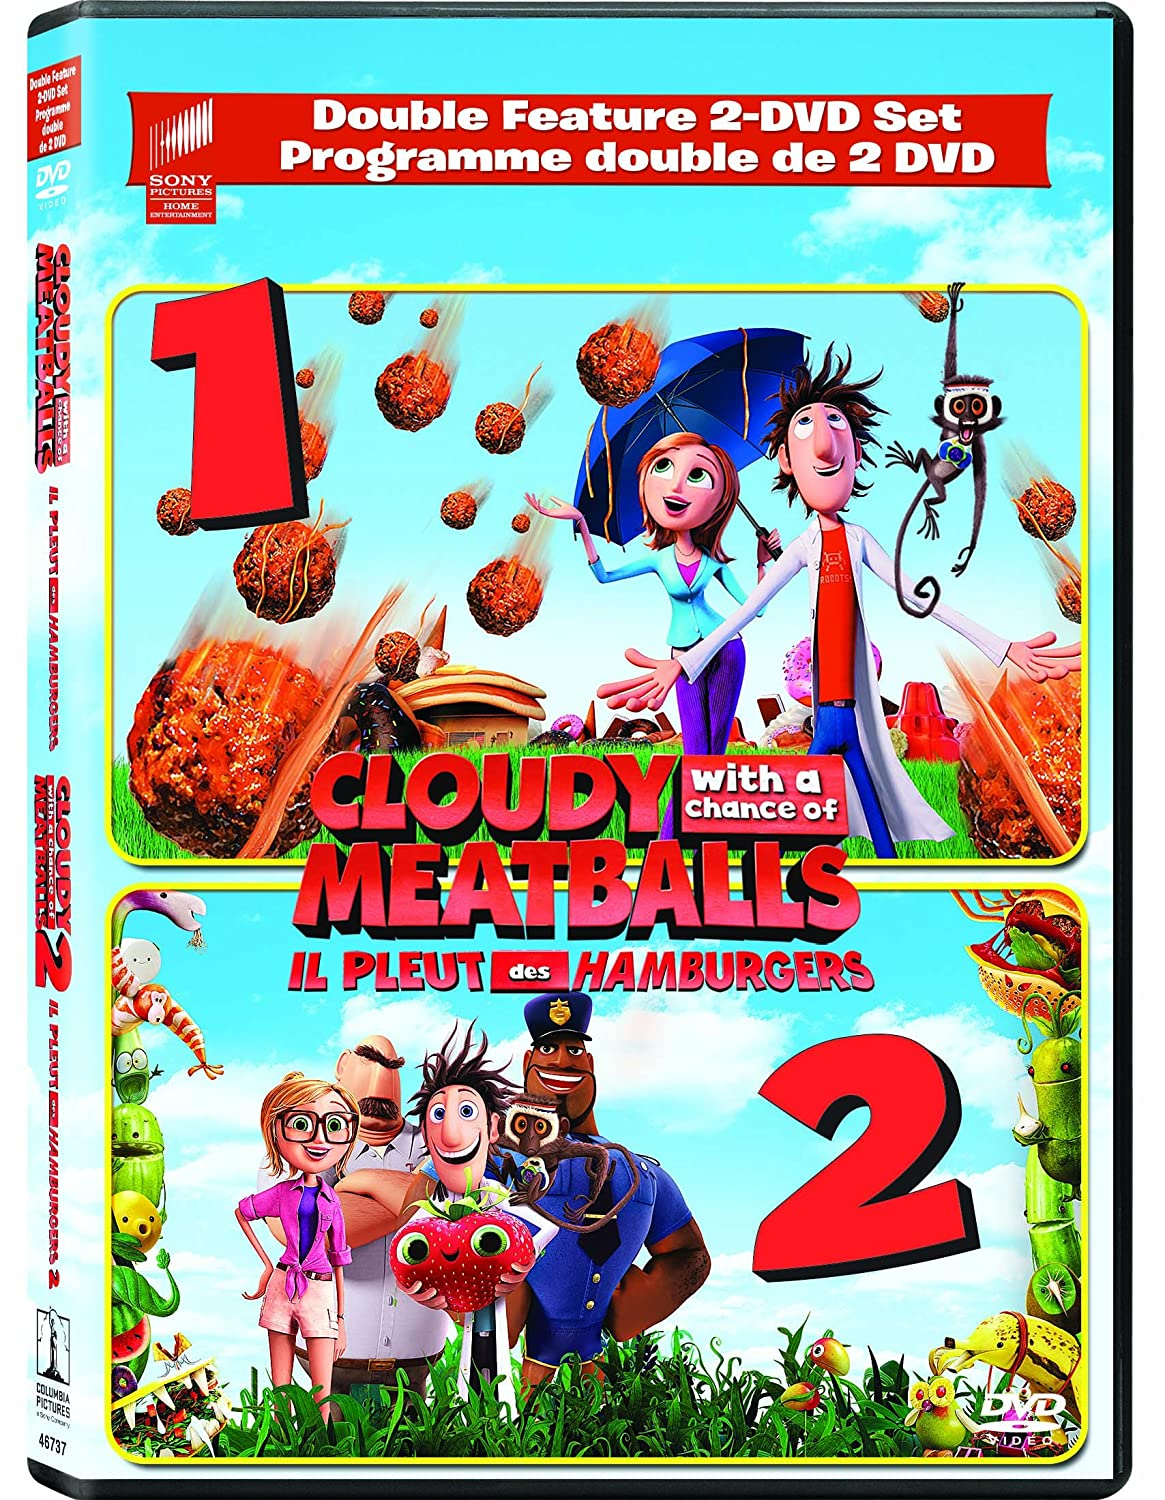 Amazon Com Cloudy With A Chance Of Meatballs 1 2 Double Feature 2 Dvd Set Bill Hader Anna Faris James Caan Andy Samberg Bruce Campbell Phil Lord Christopher Miller Cody Cameron Kris Pearn